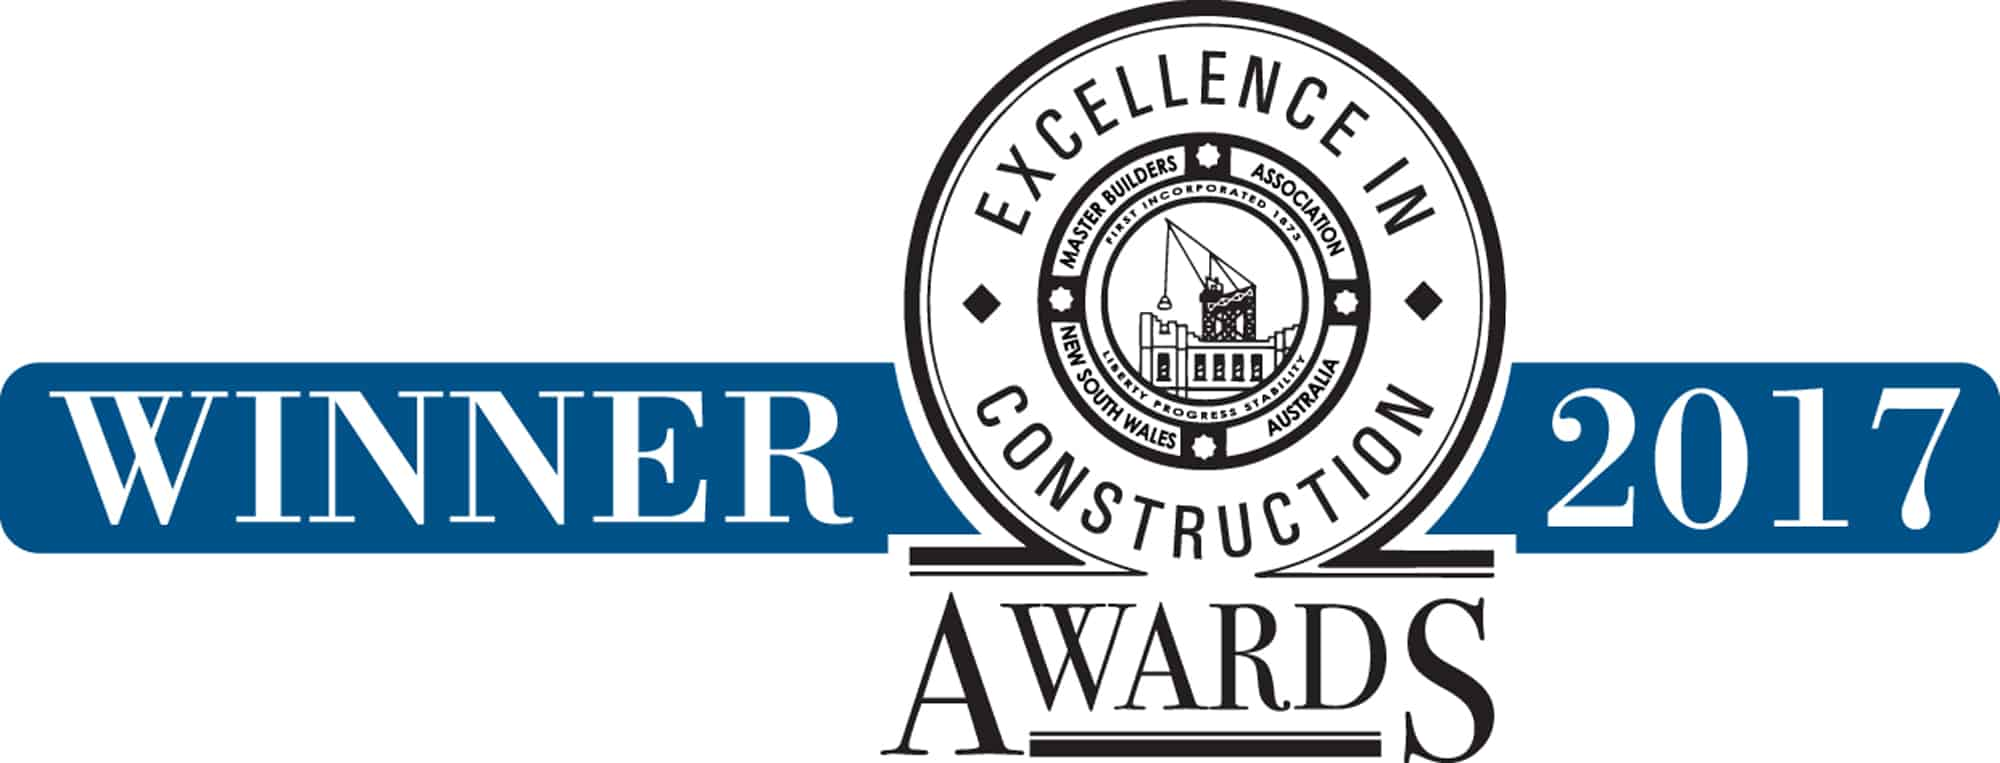 Winner excellence in construction 2017